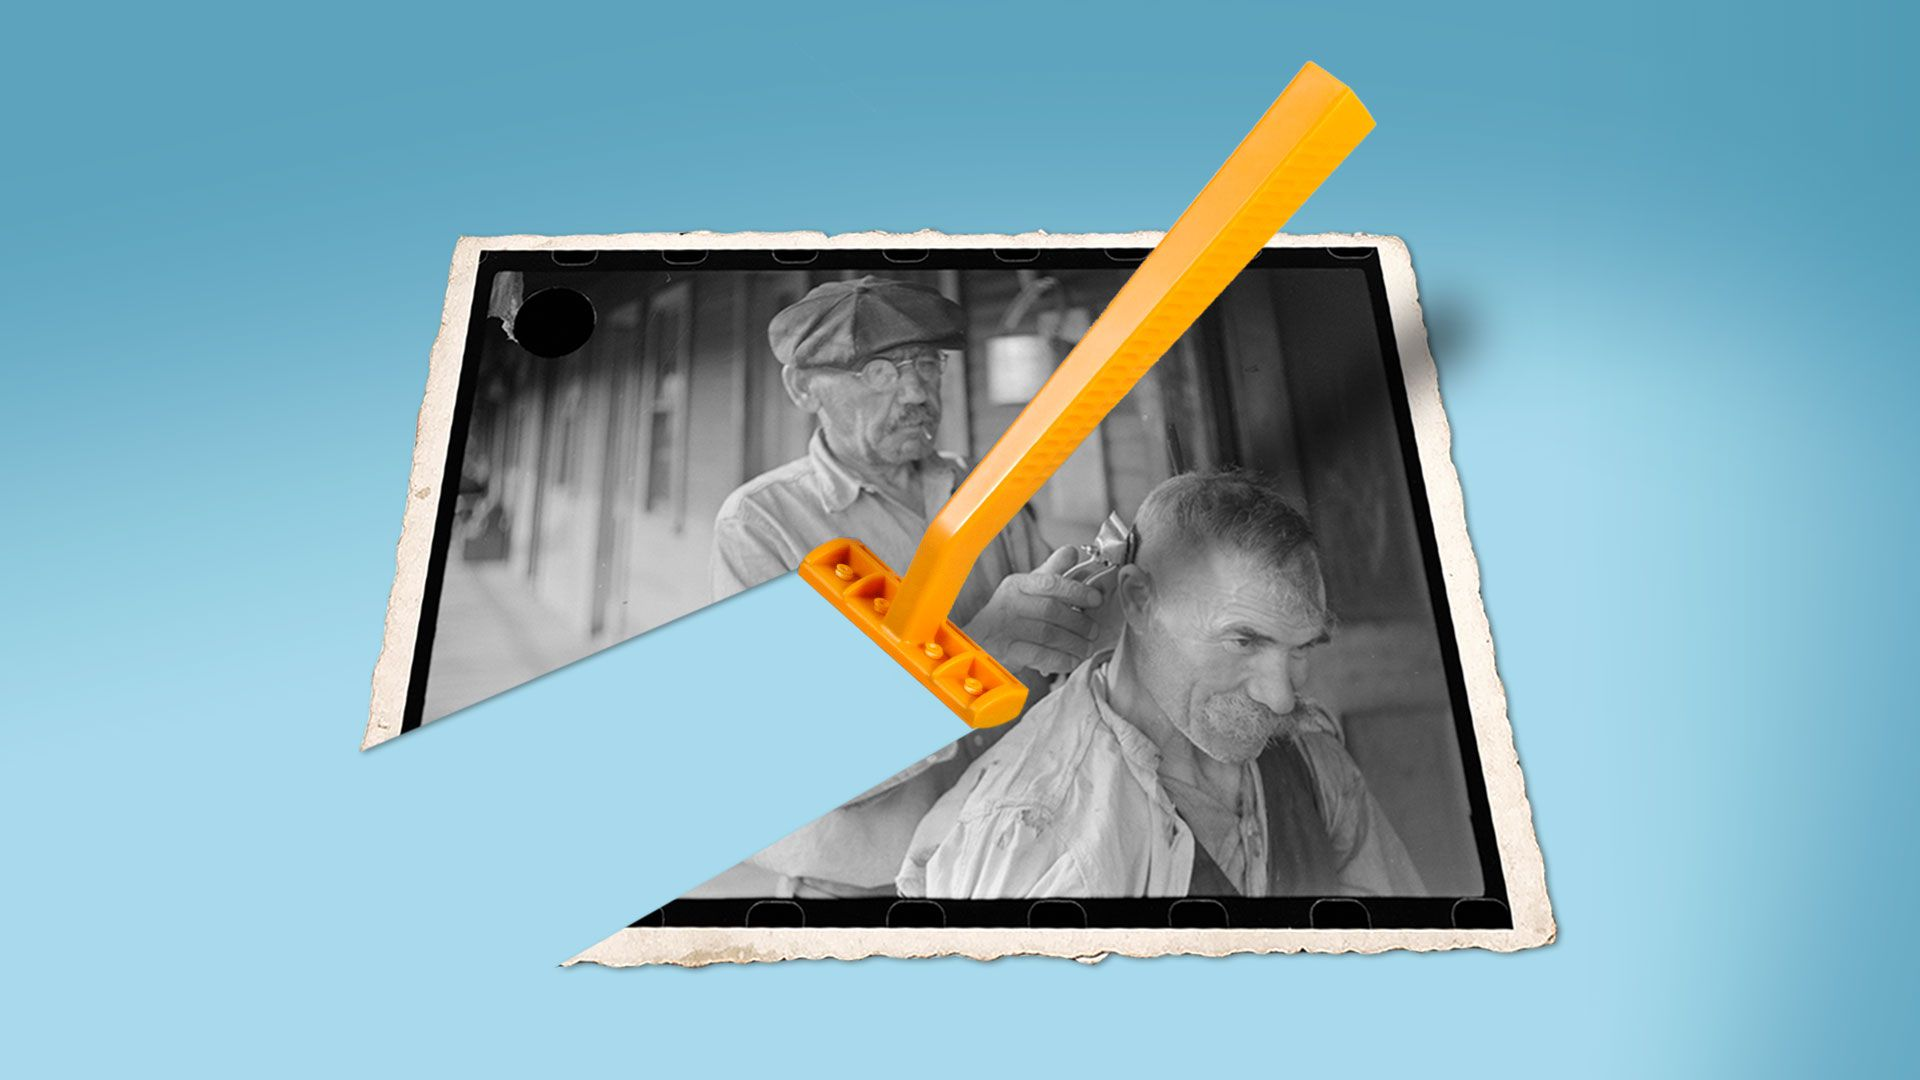 Illustration of a new shaving razor shaving away an old timey photograph of a barber